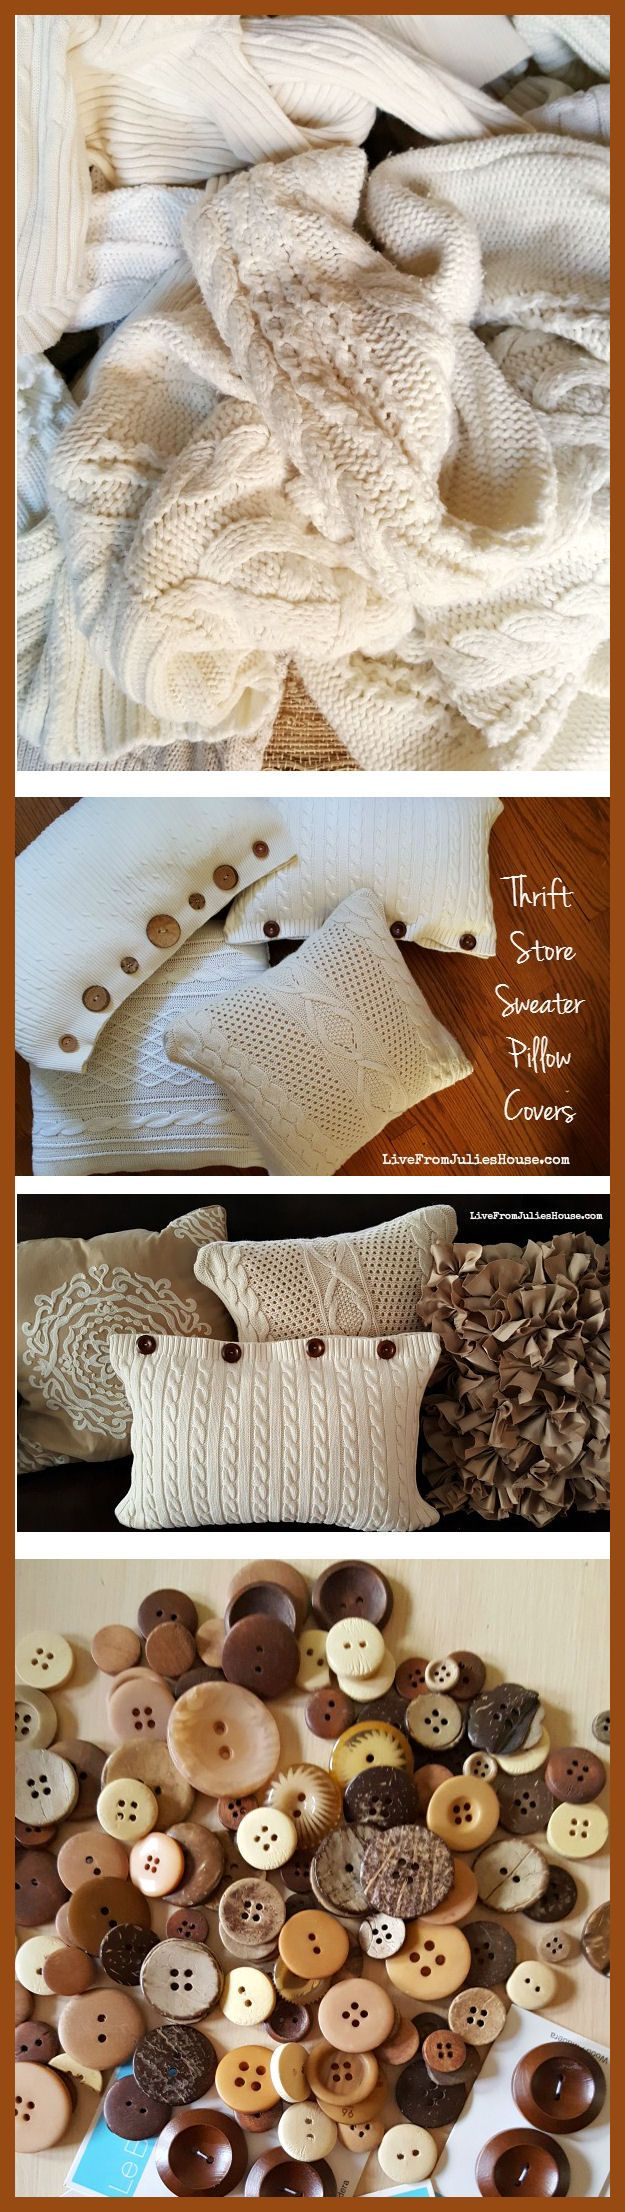 17 Best ideas about Old Pillows on Pinterest | Throw ...